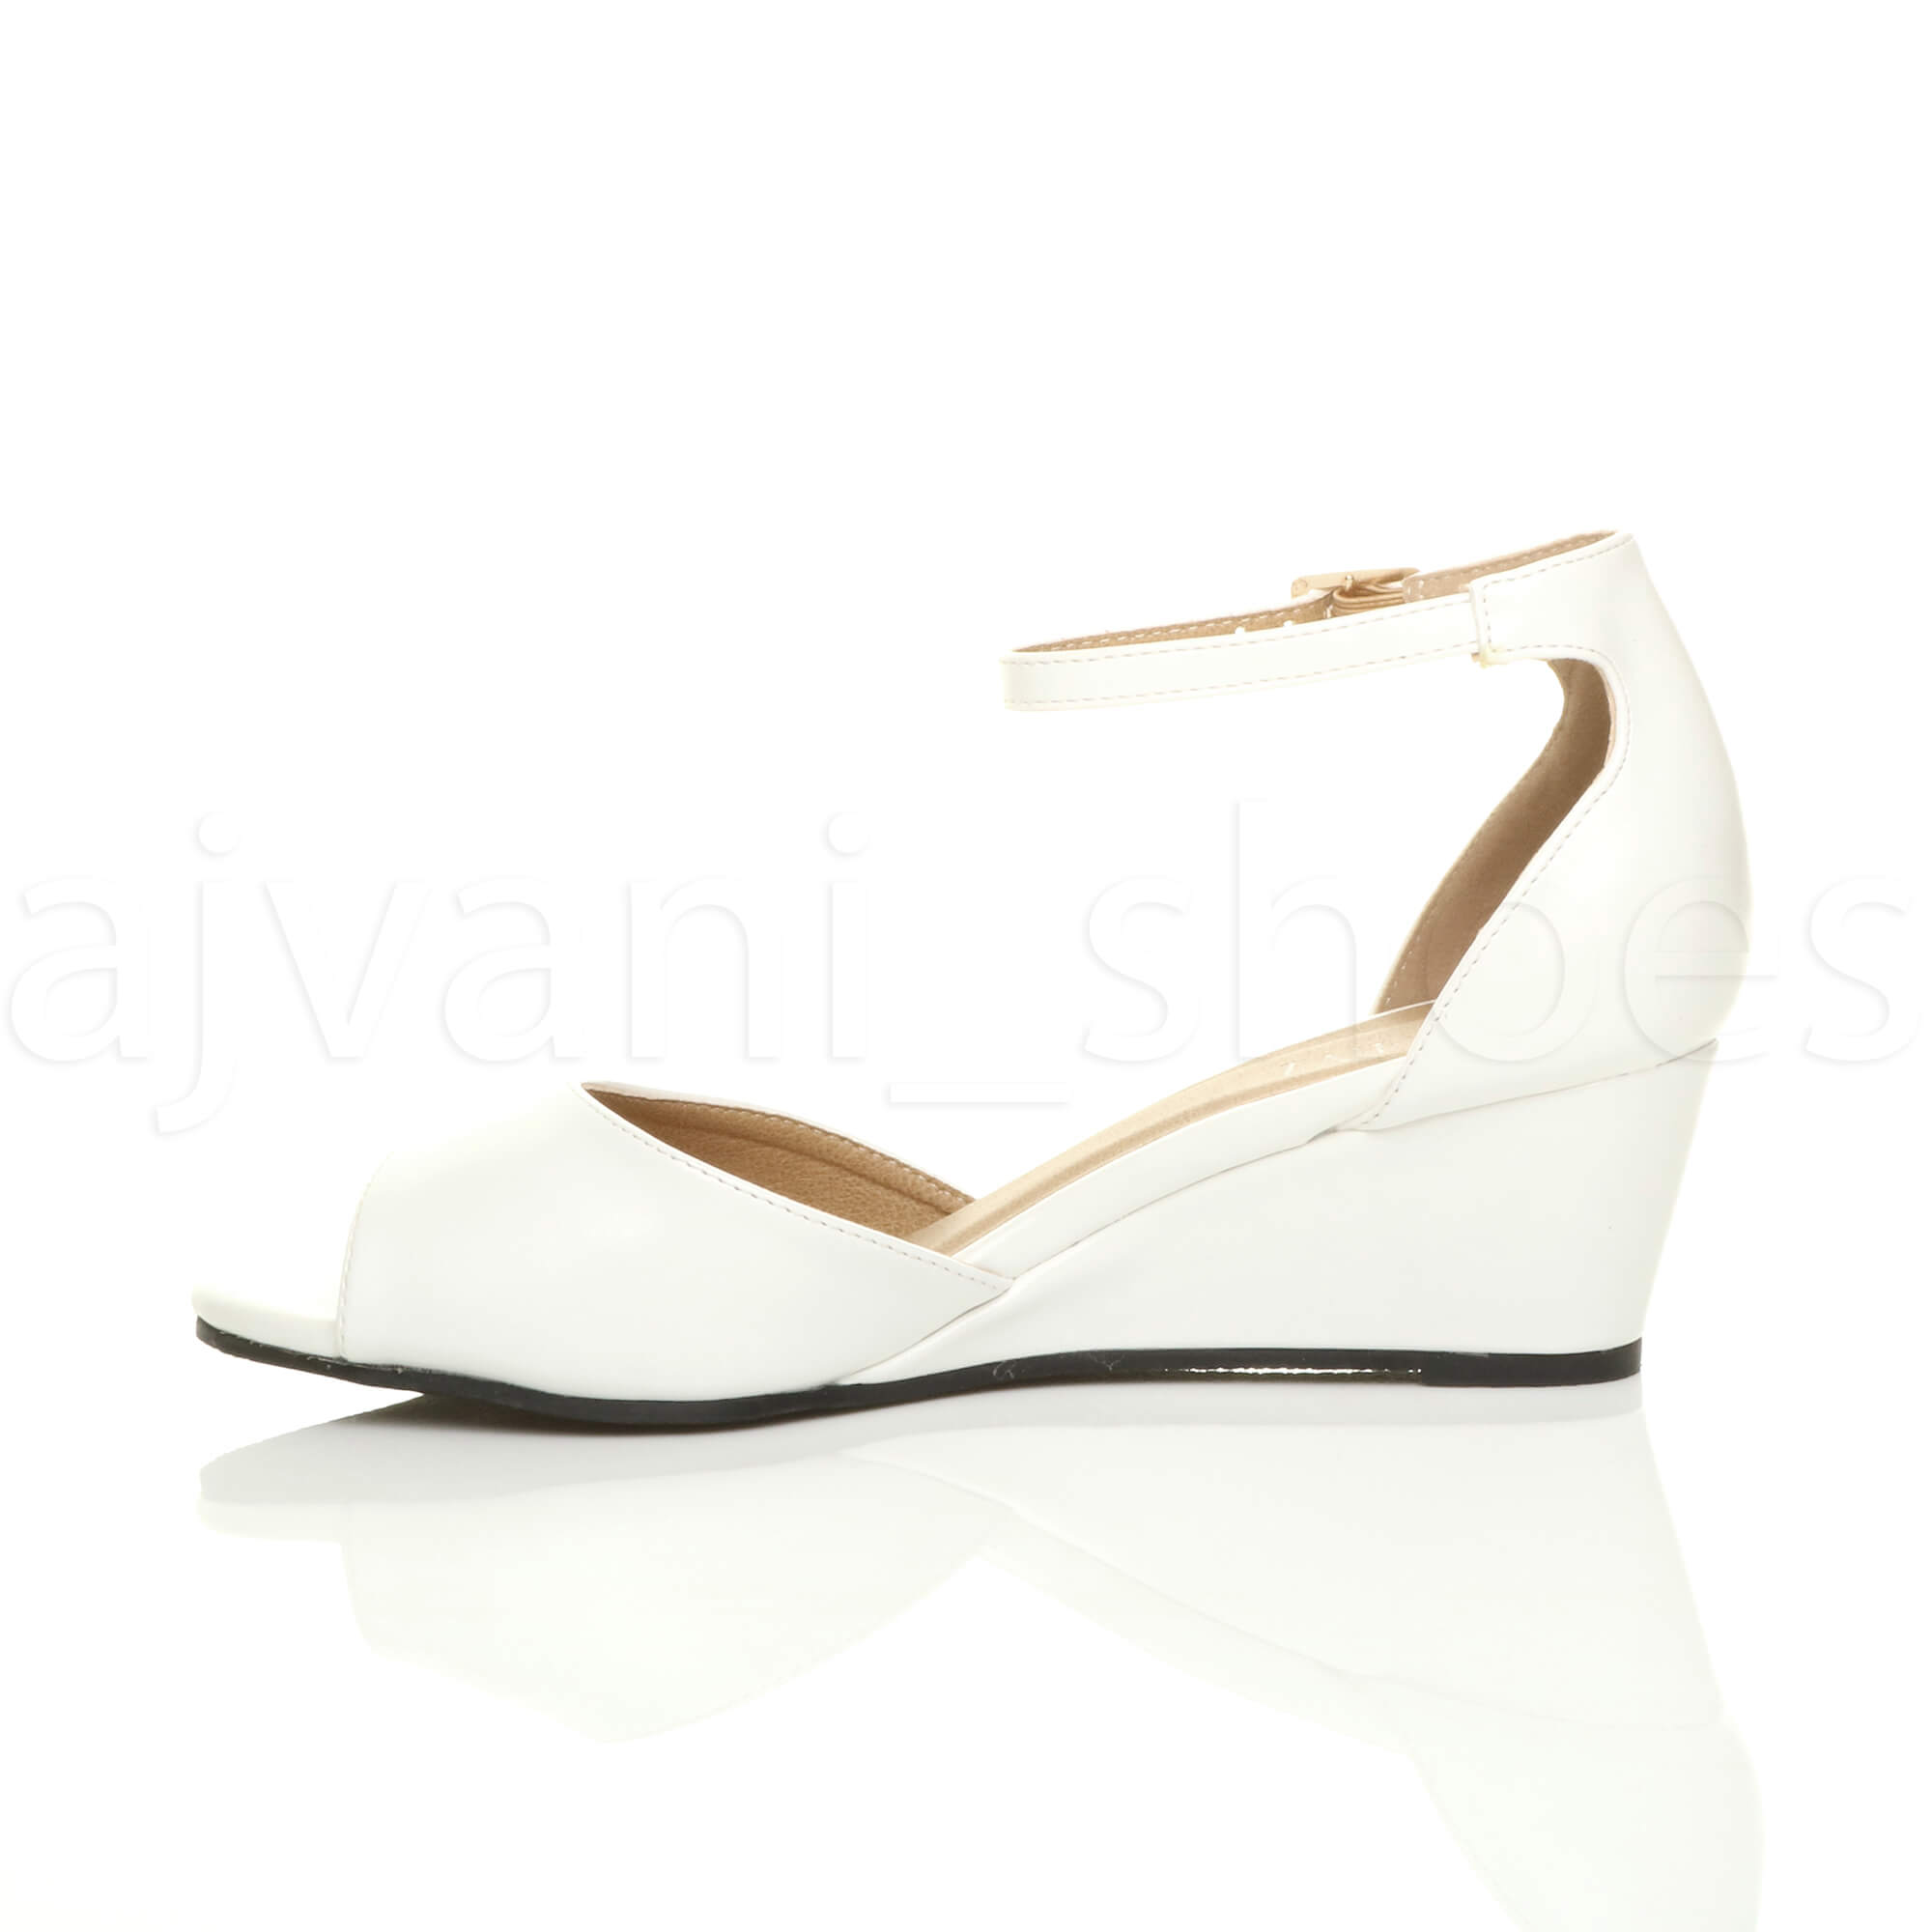 WOMENS-LADIES-LOW-MID-WEDGE-HEEL-ANKLE-STRAP-SMART-CASUAL-EVENING-SANDALS-SIZE thumbnail 164